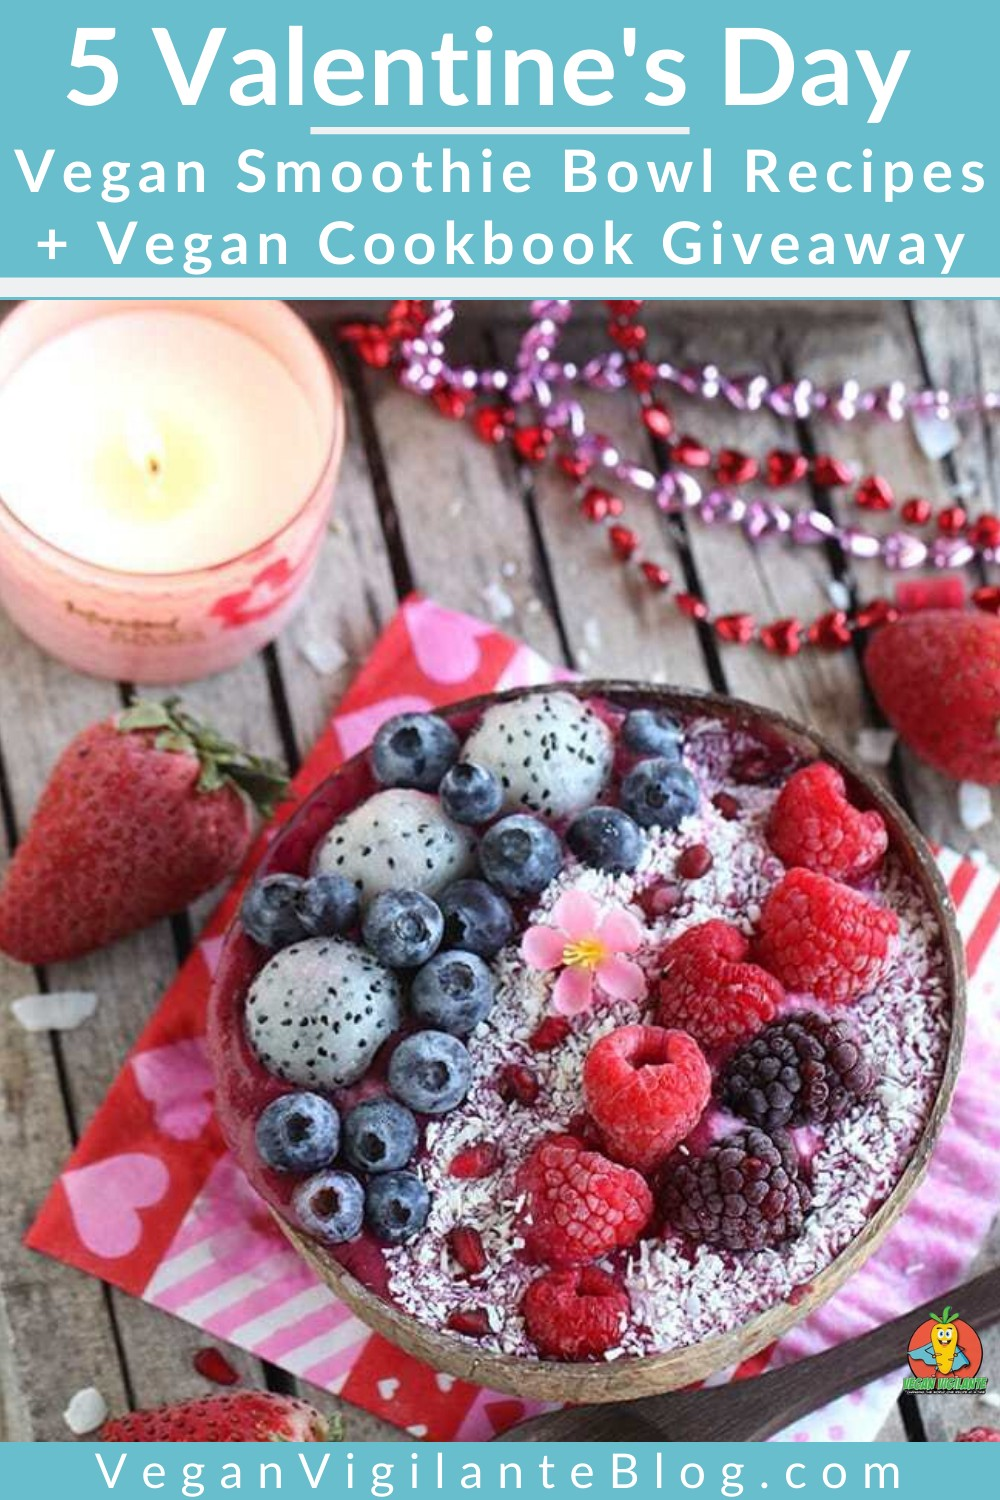 A coconut bowl filled with a fruit and berry smoothie